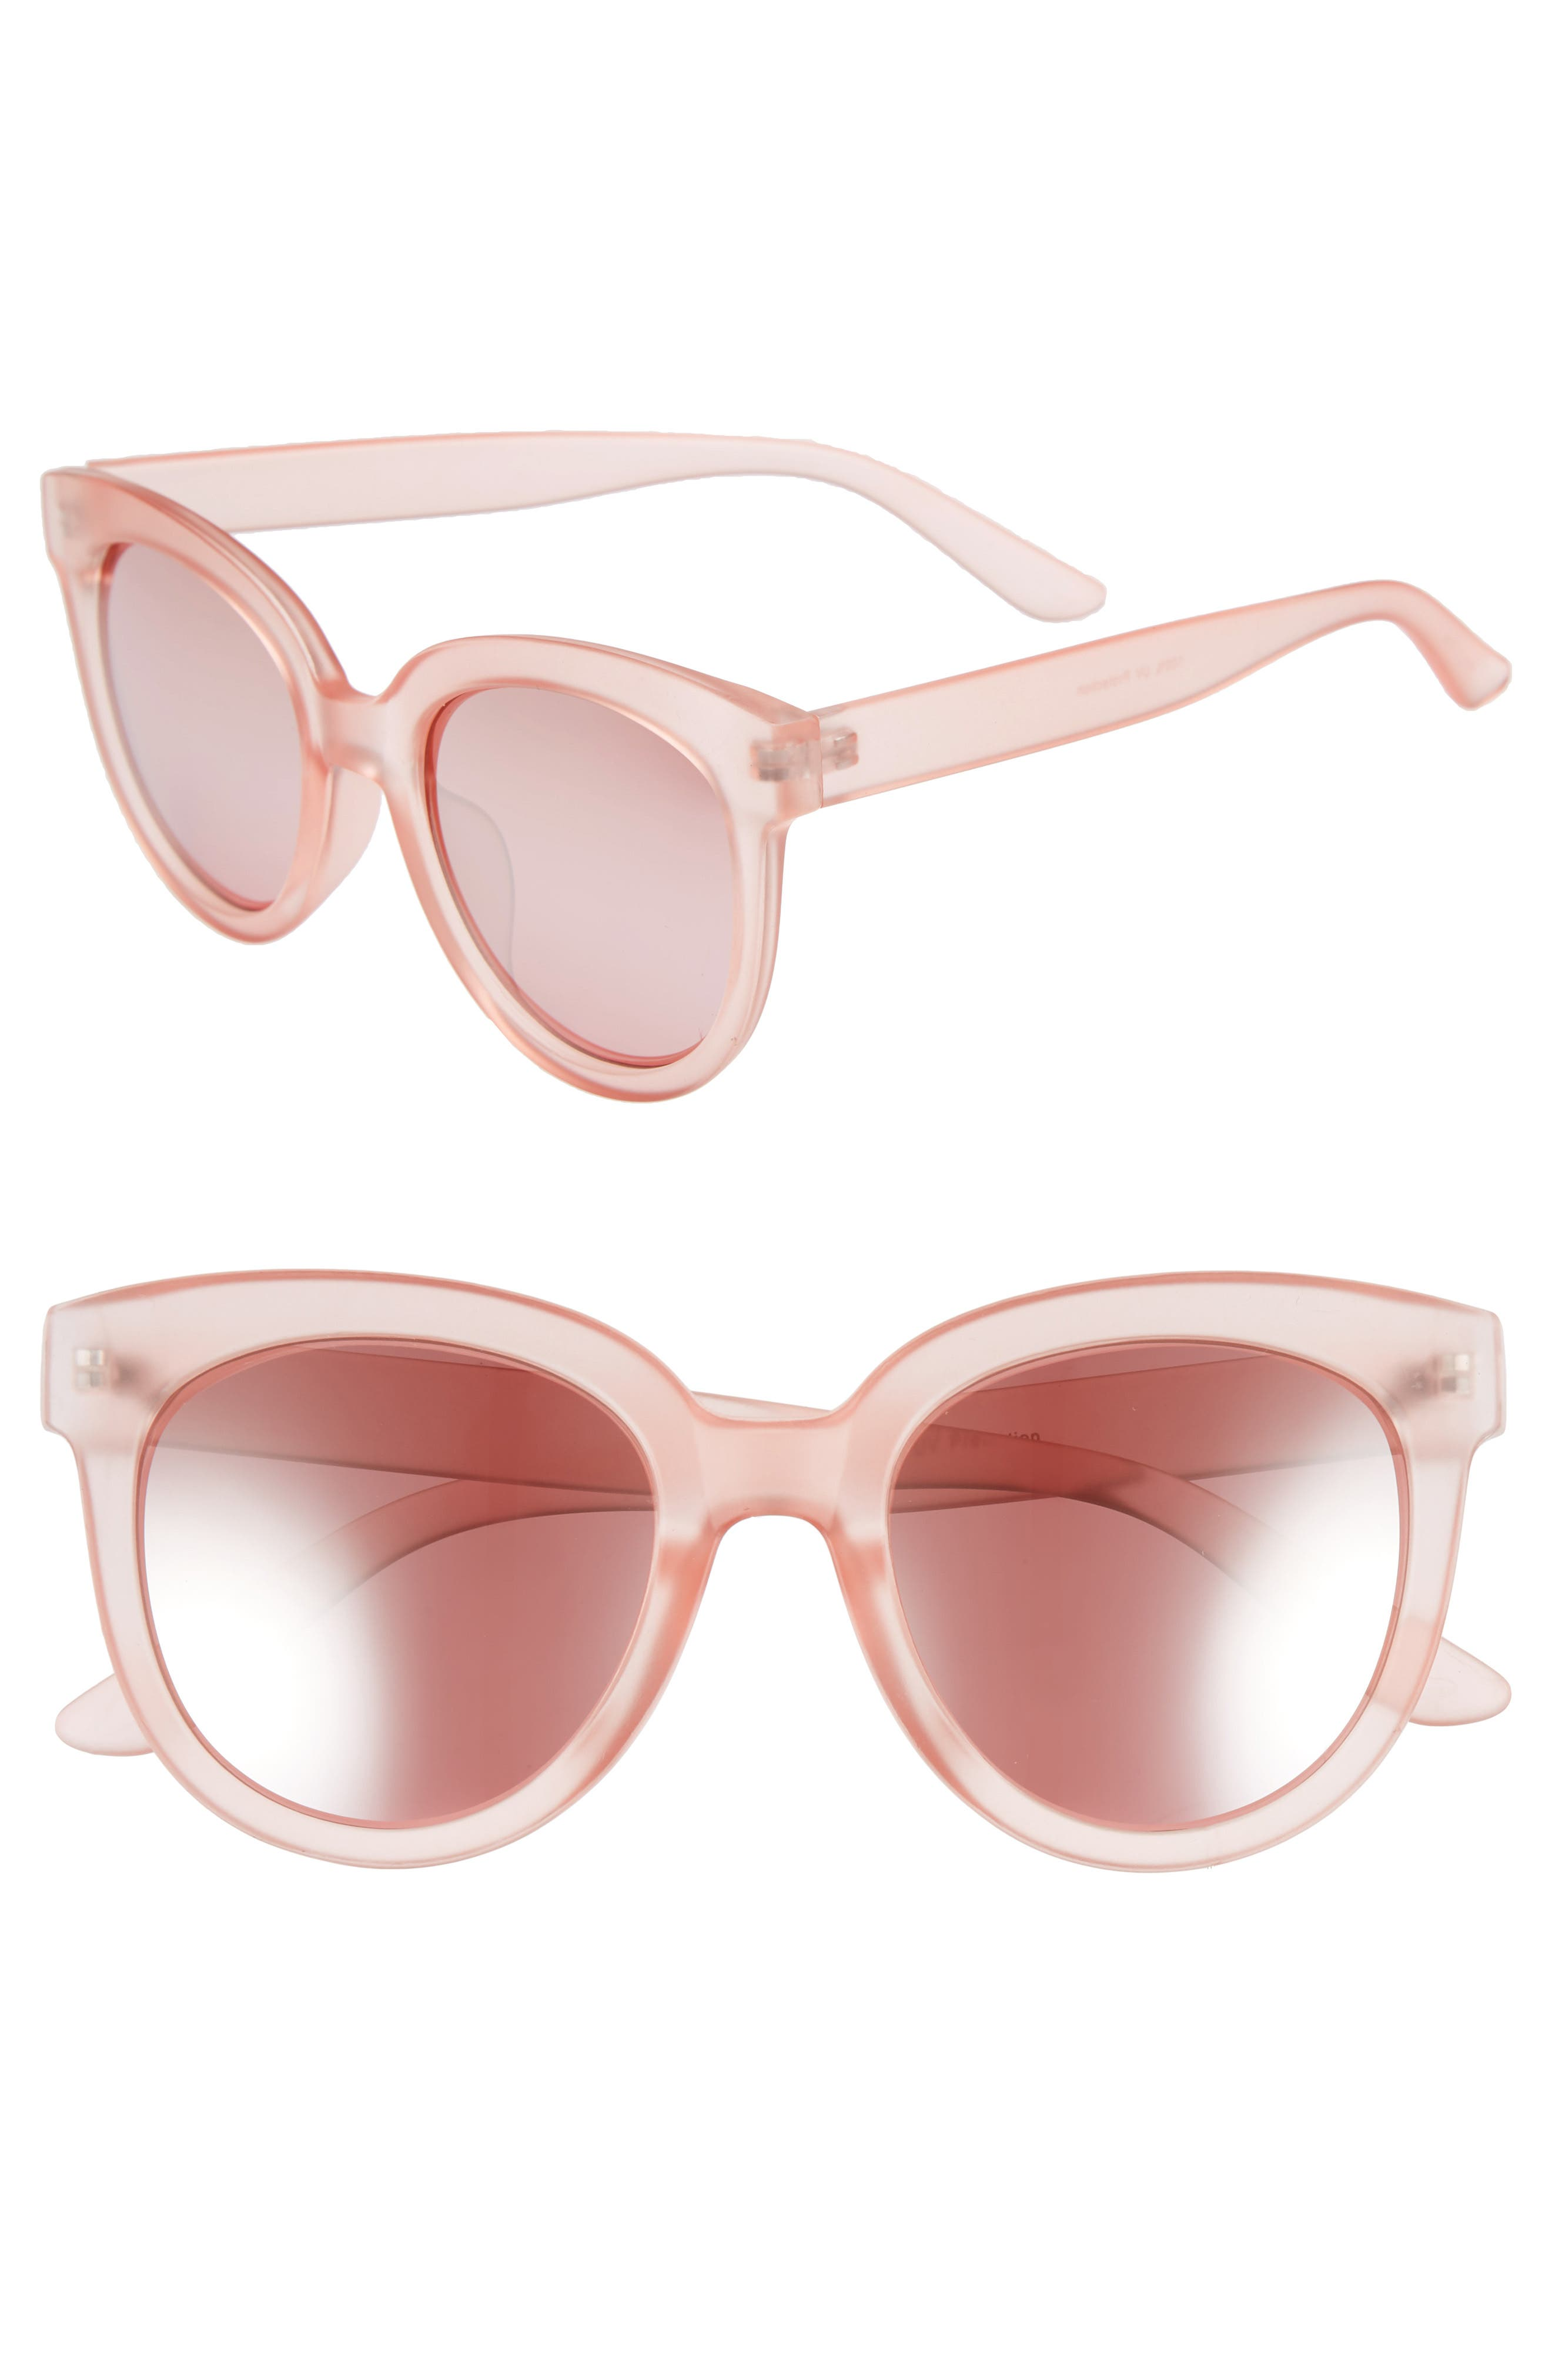 53mm Frosted Cat Eye Sunglasses,                             Main thumbnail 1, color,                             MILKY PINK/ ROSE GOLD